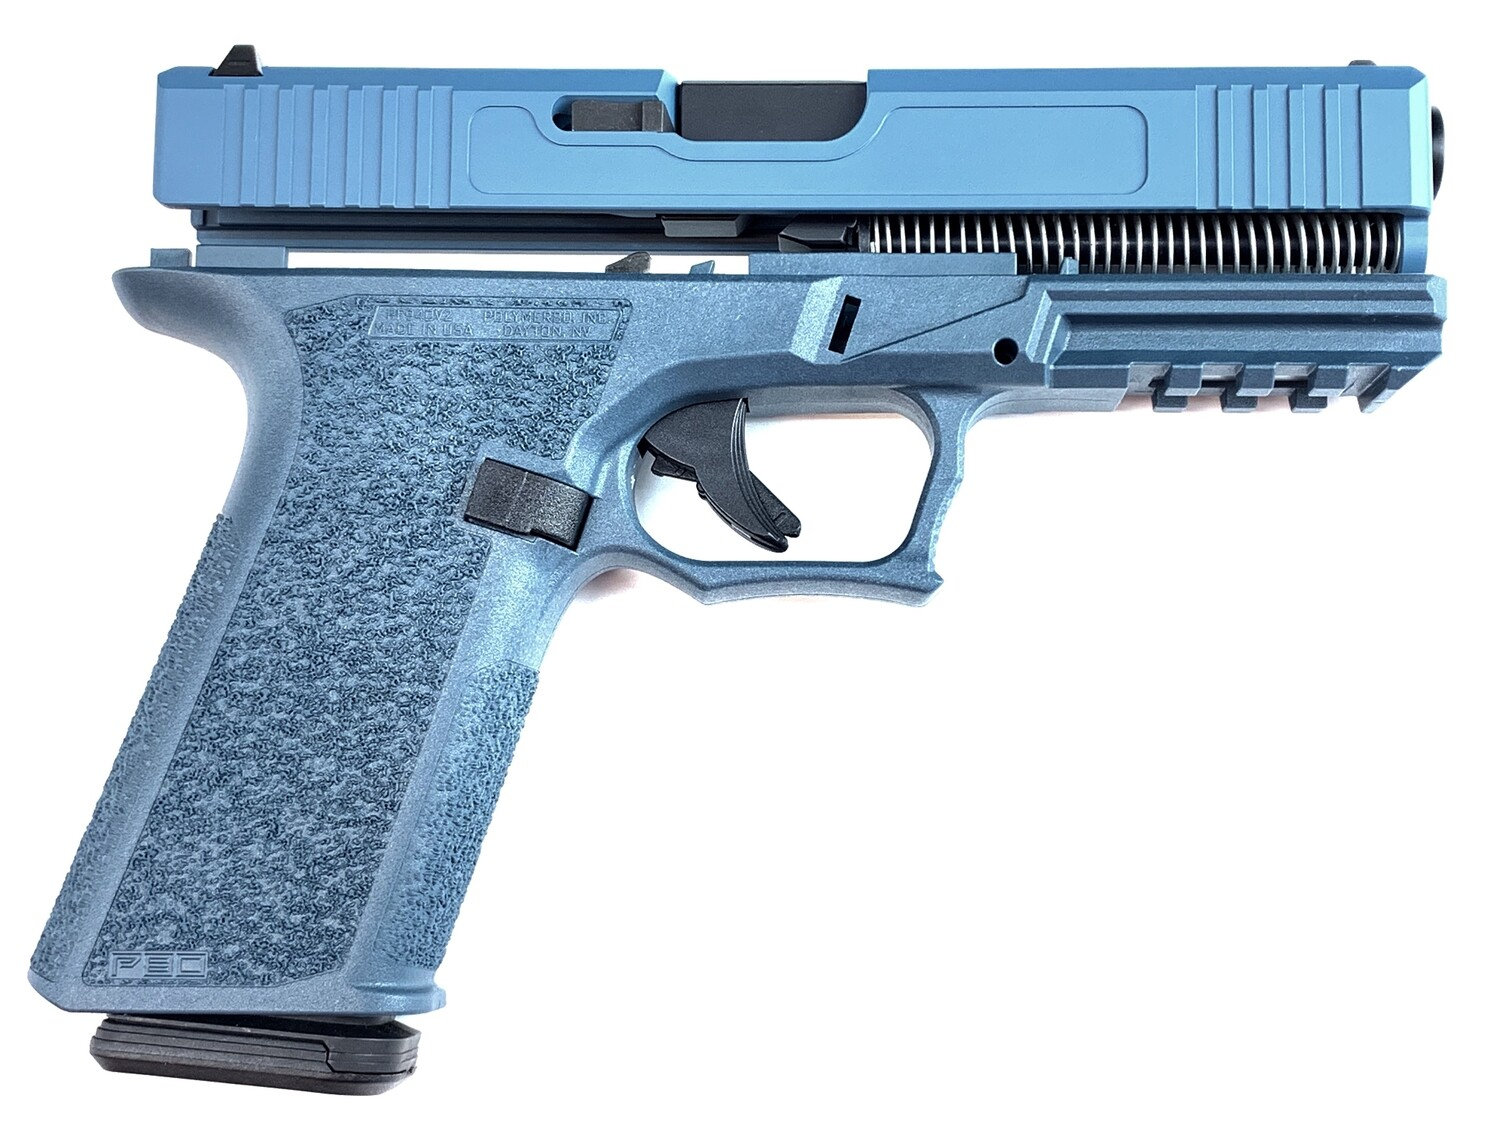 Patriot G17 80% Pistol Build Kit 9mm - Blue Titanium - FRAME NOT INCLUDED